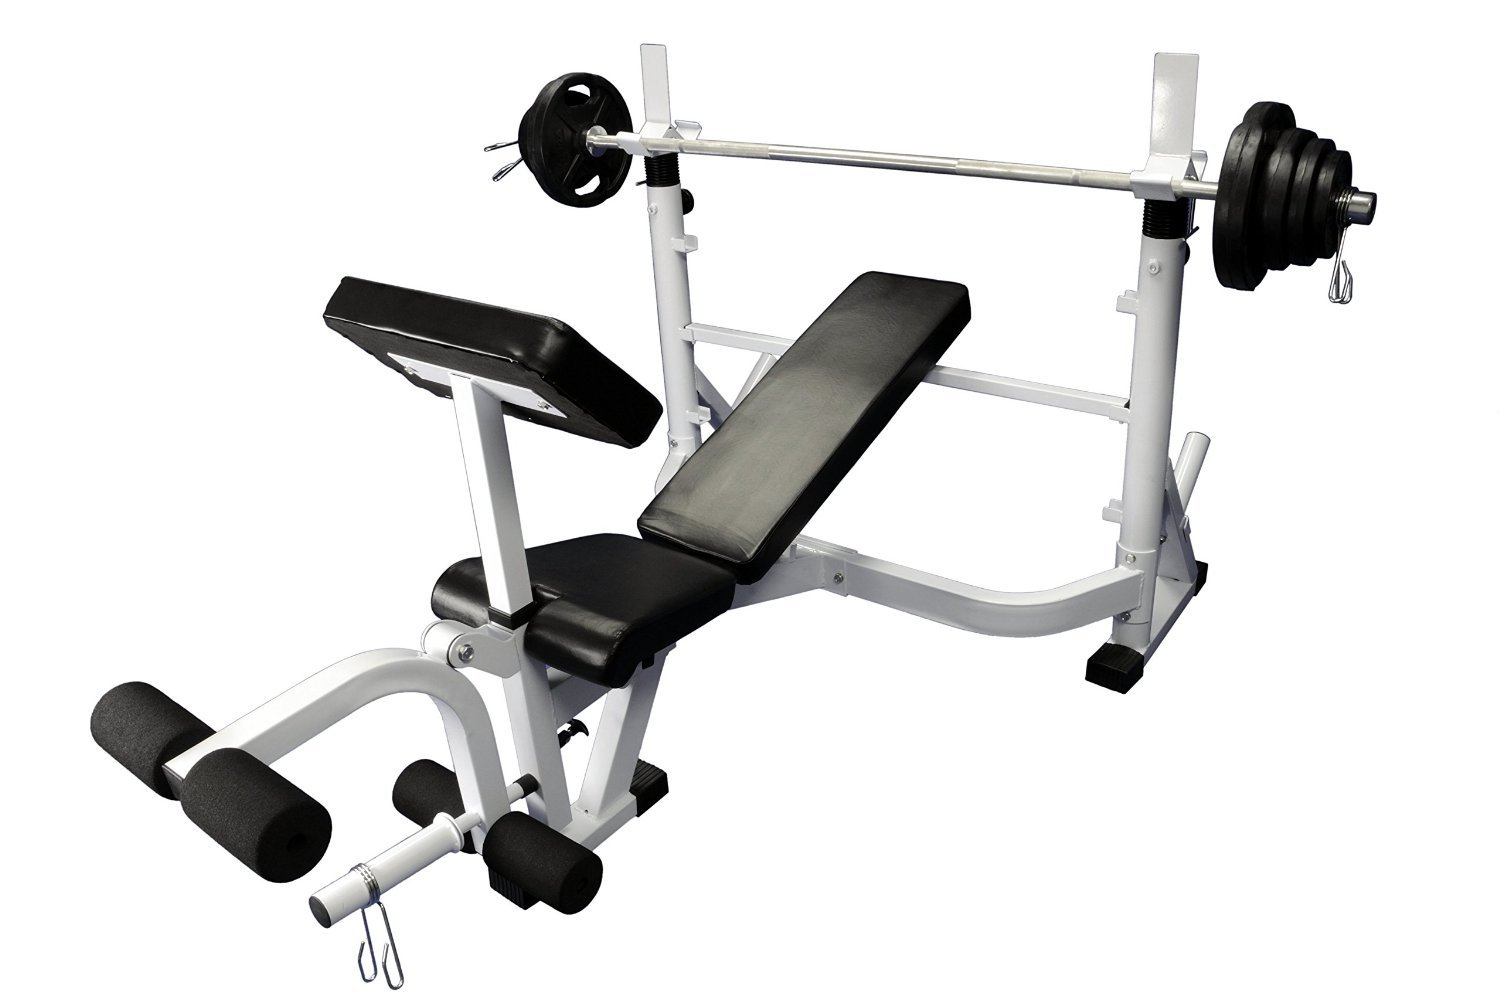 Olympic 300 lb weight set with Power Olympic Bench by Ader Sporting Goods